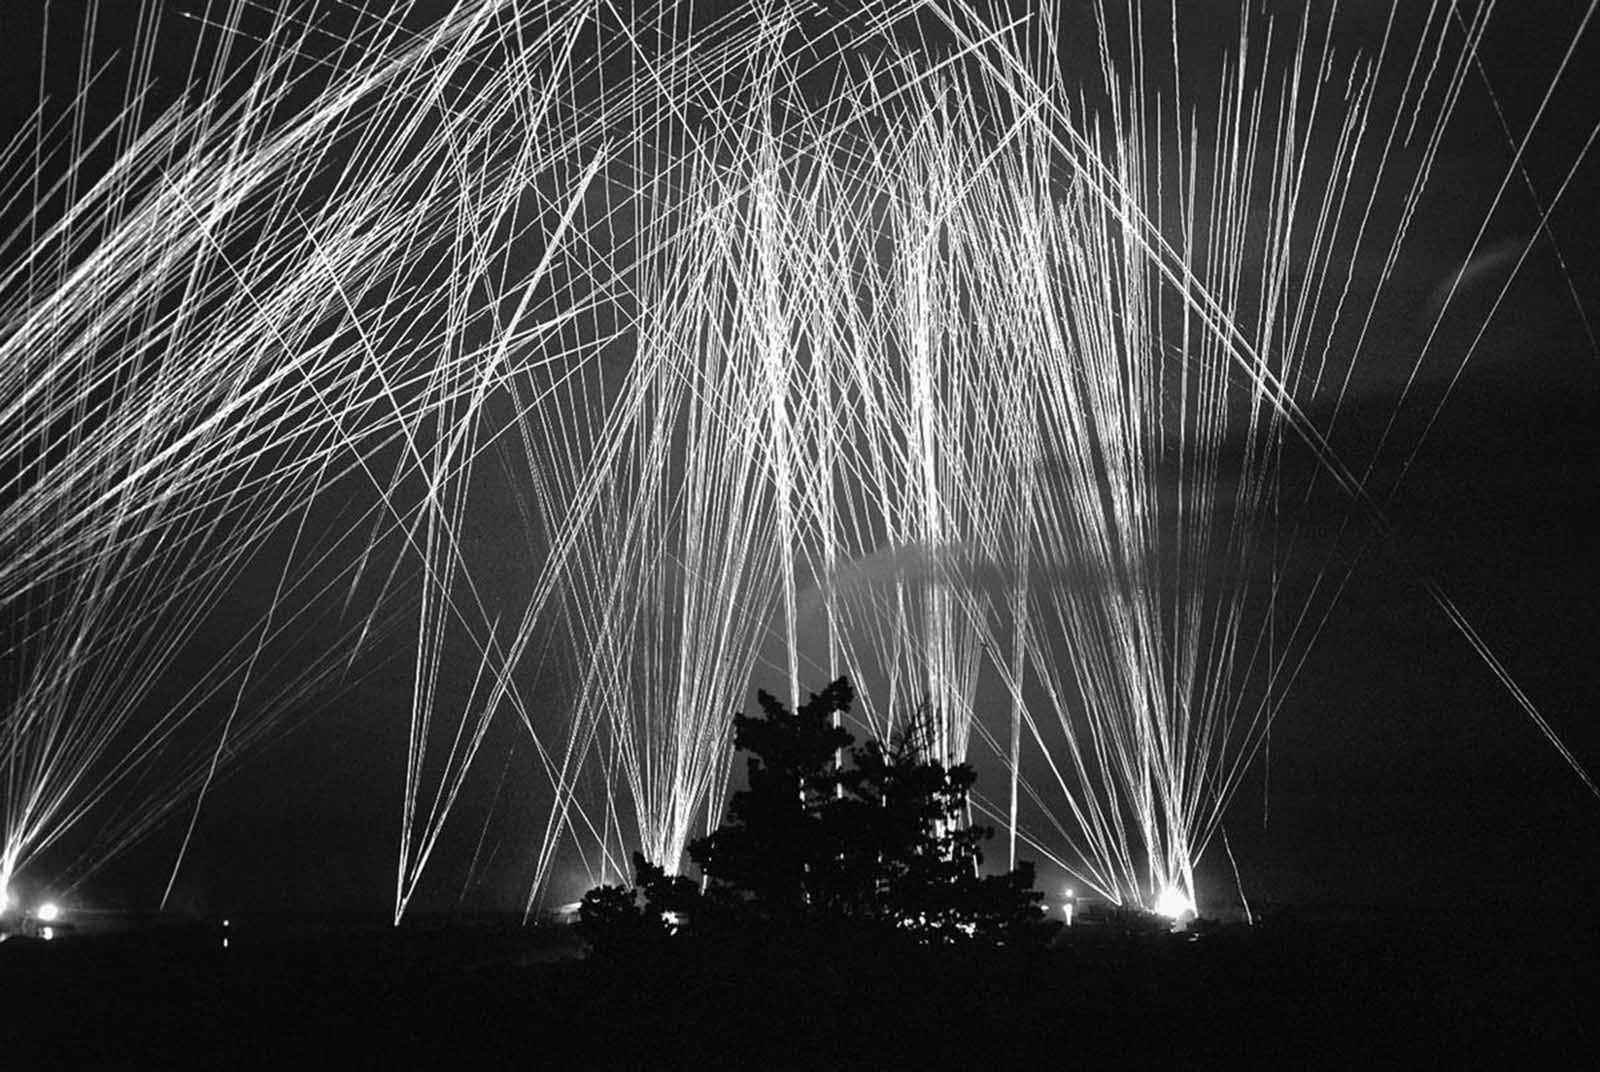 This pattern of anti-aircraft fire provides a protective screen over Algiers at night. The photo, recording several moments of gunfire, shows a defense thrown up during an axis raid upon Algiers in North Africa on April 13, 1943.